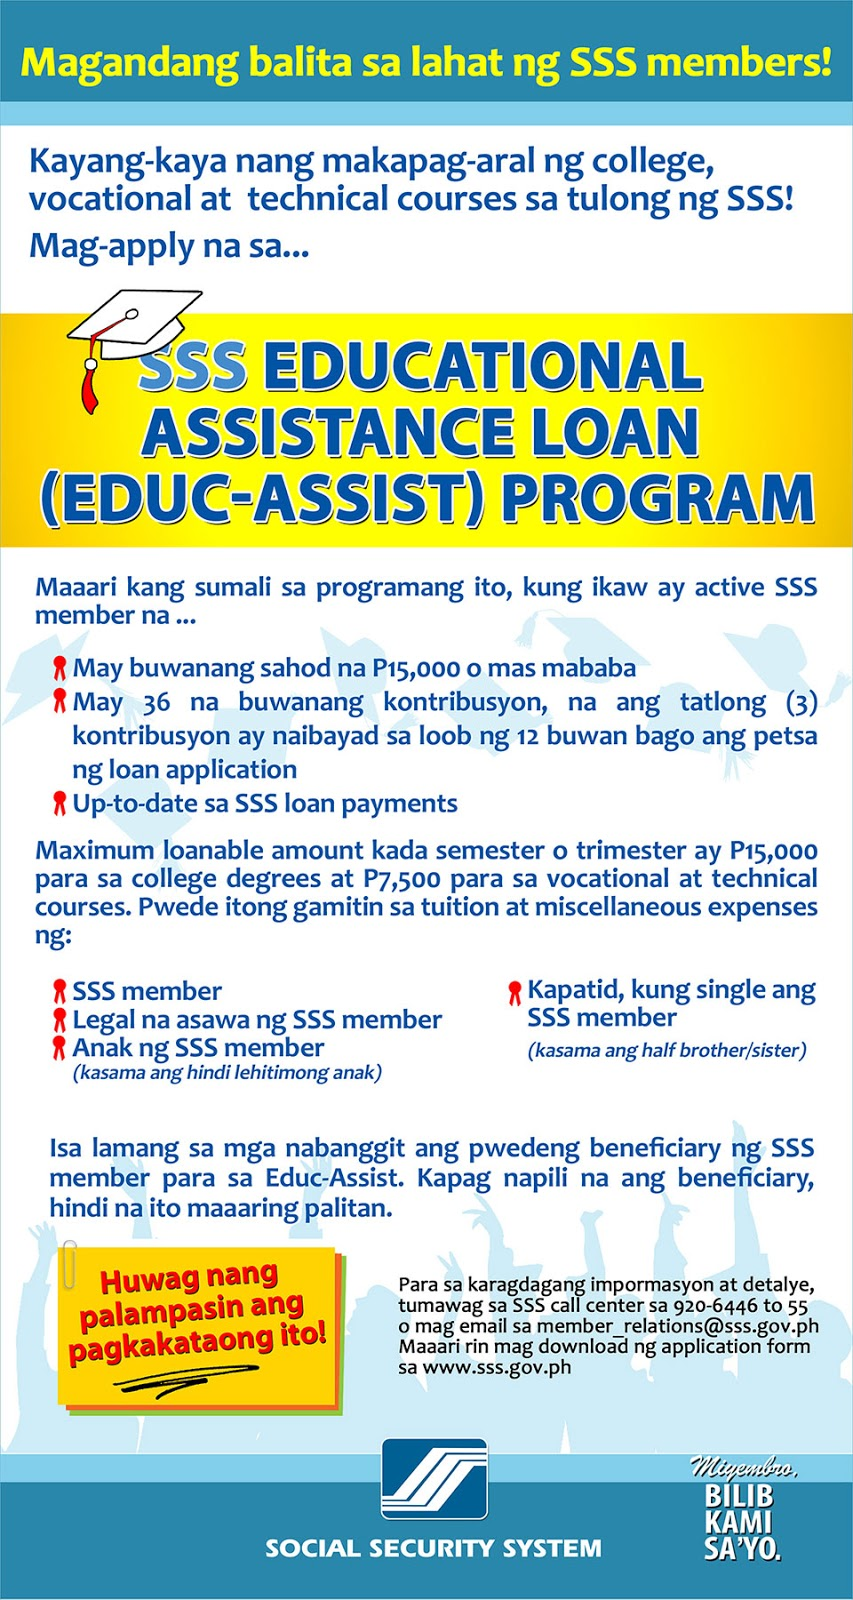 Make Today Count: The SSS Educational Loan